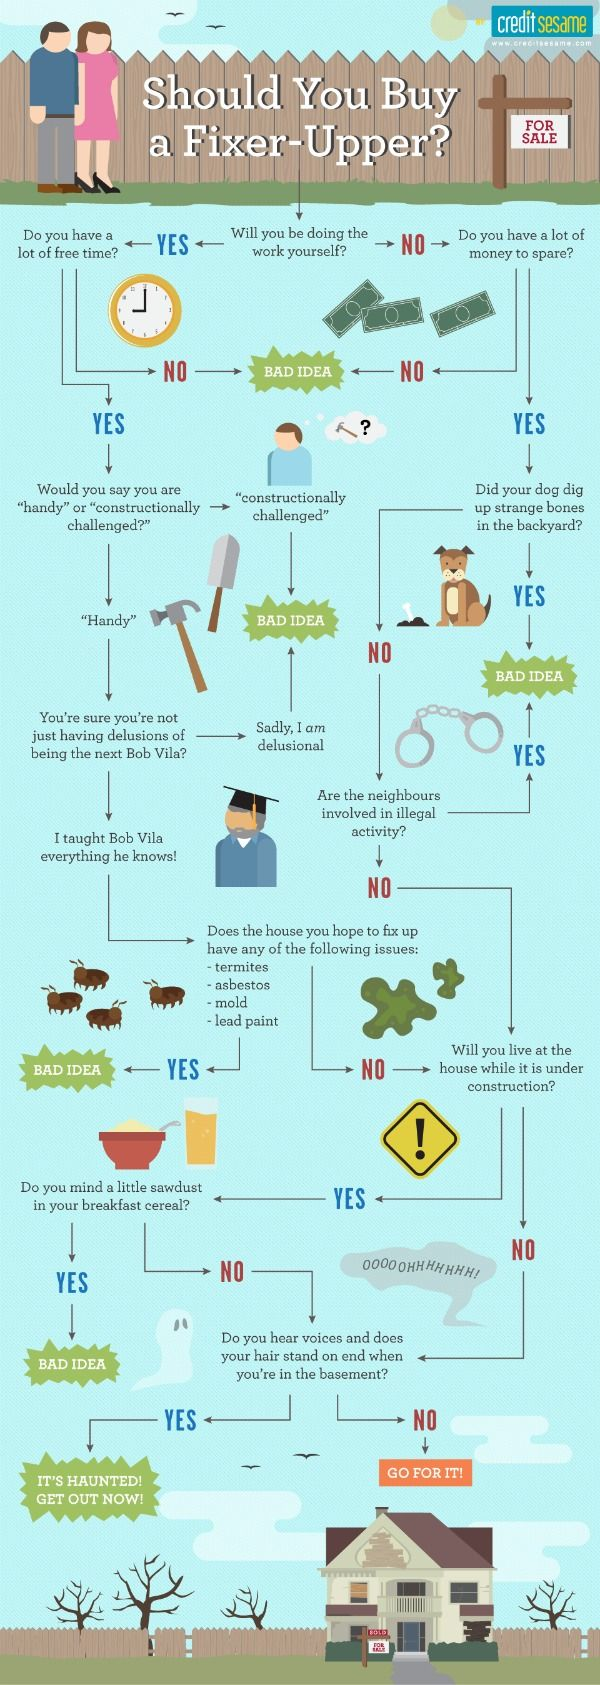 Go to http://wanelo.com/p/5131938/dog-ninja for real estate leads - Should you buy a fixer-upper? Real estate infographics